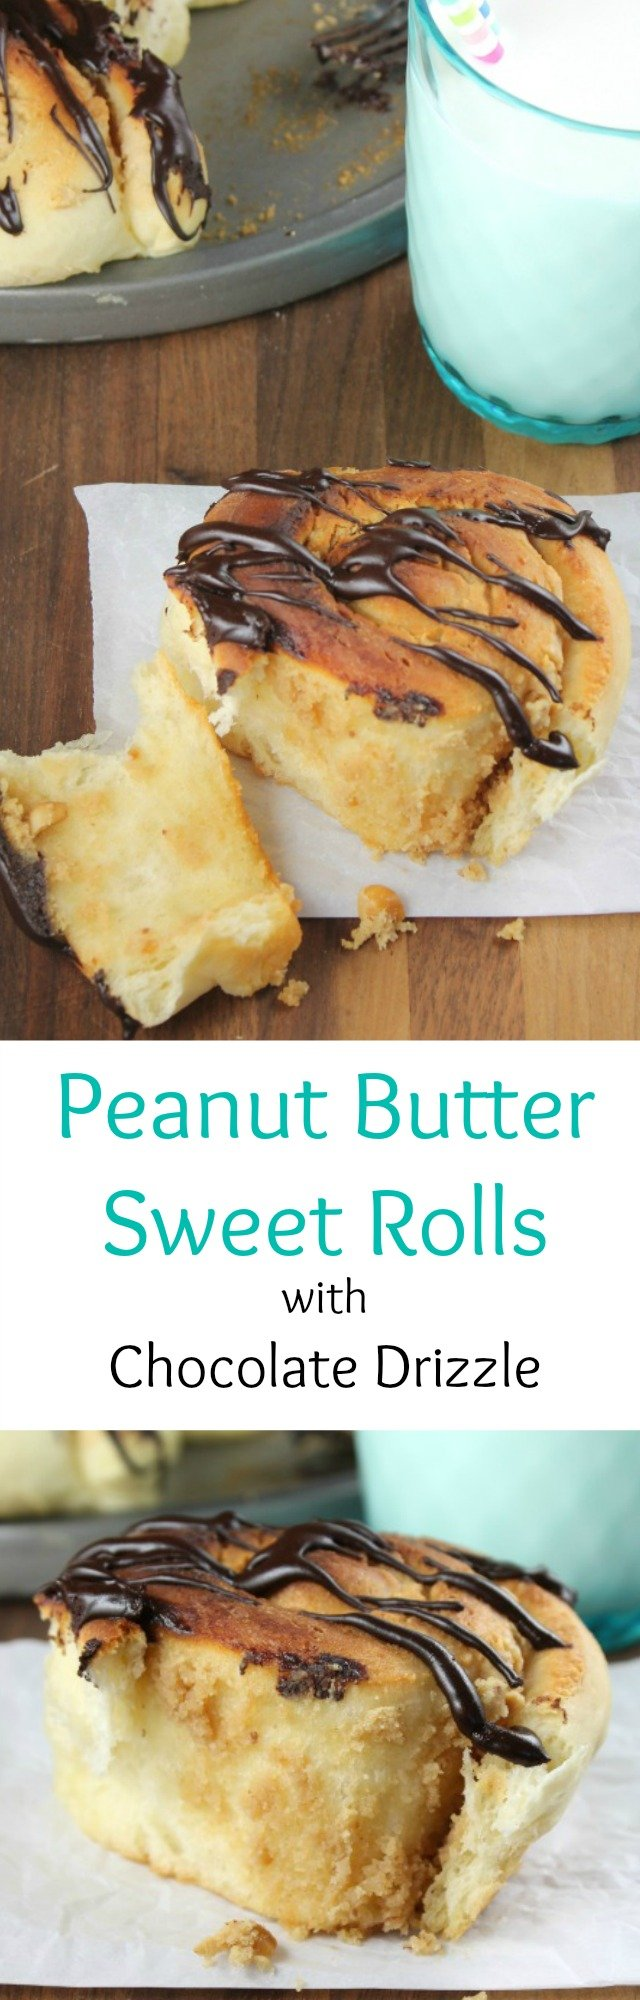 Recipe for Peanut Butter Sweet Rolls with Chocolate Drizzle from Miss in the Kitchen